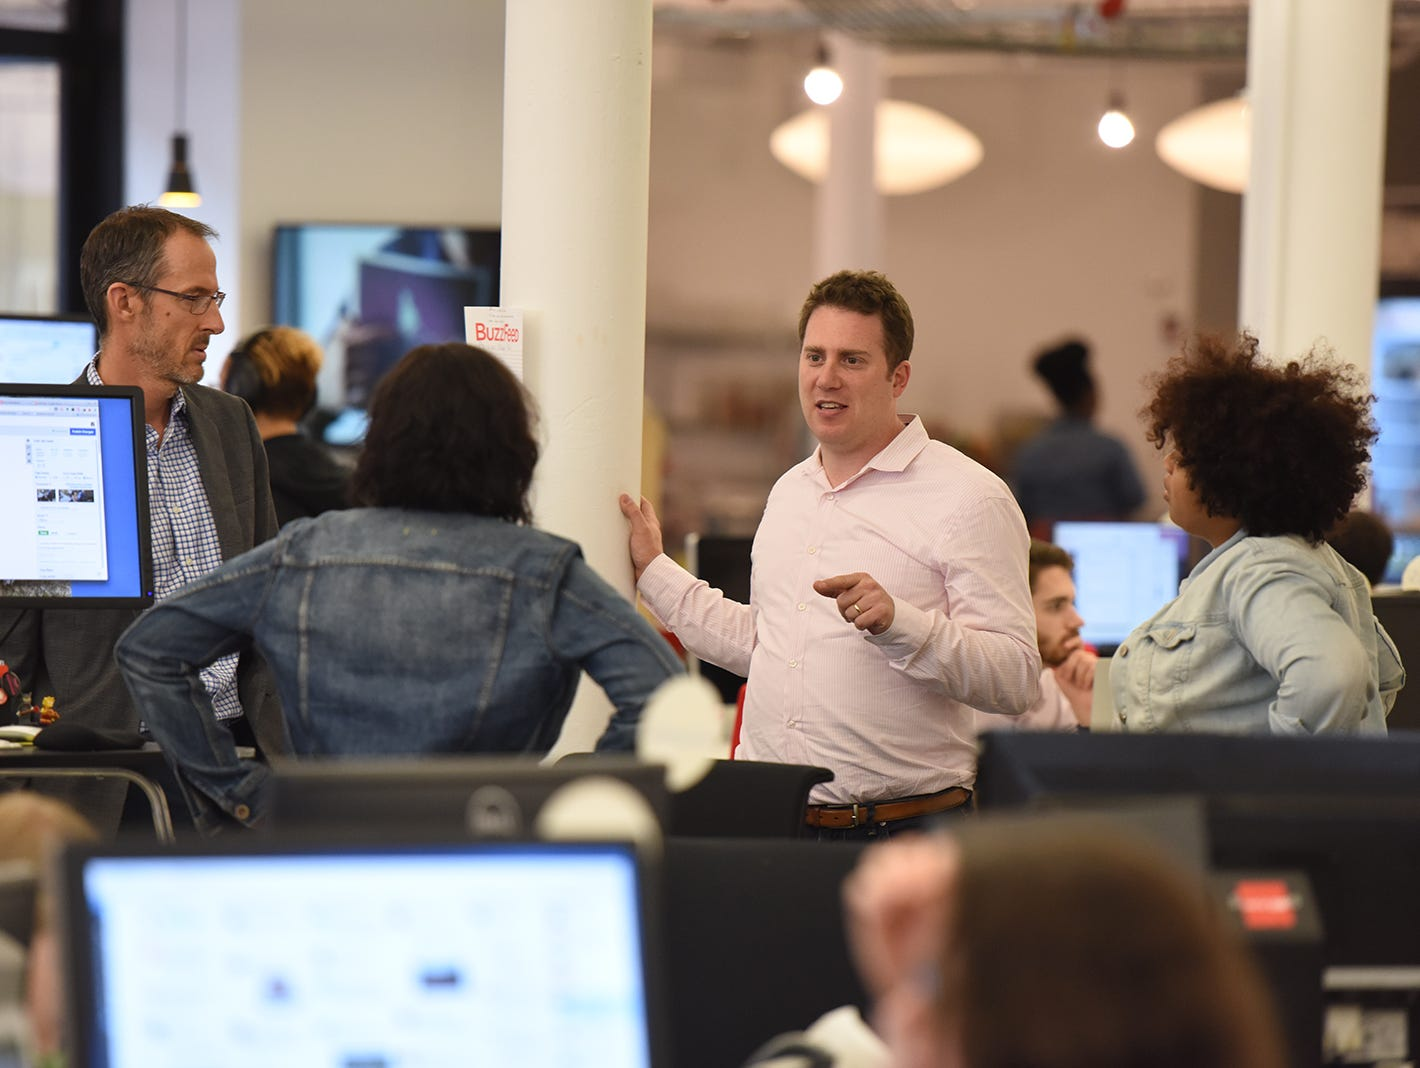 BuzzFeed Editor in Chief Ben Smith says he wants his news staff to report stories with